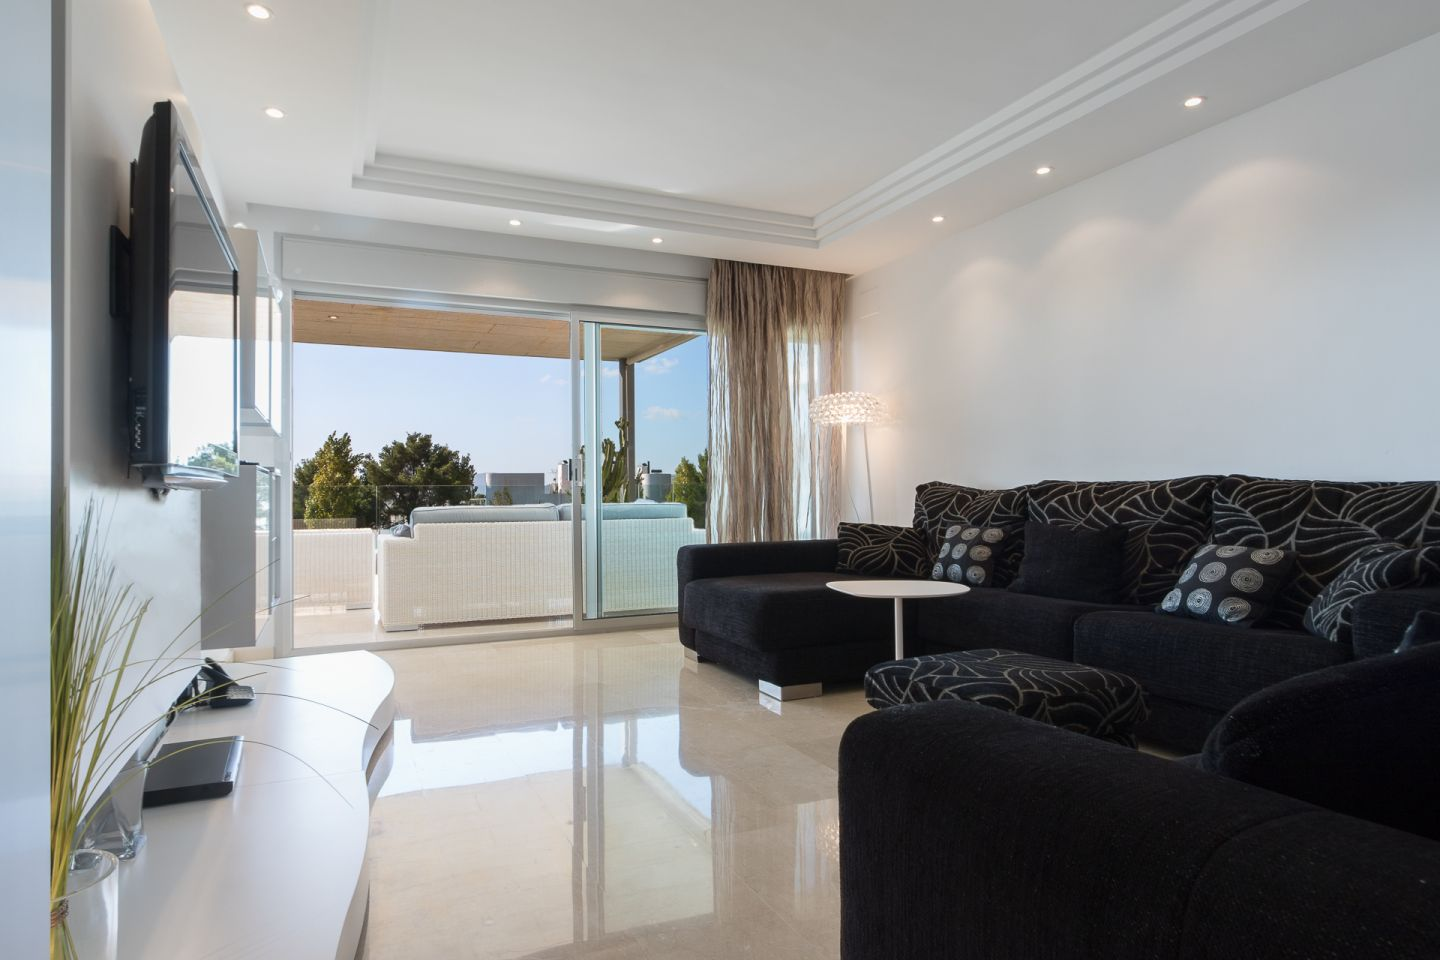 4 Bed Penthouse for sale in PUERTO POLLENSA 5